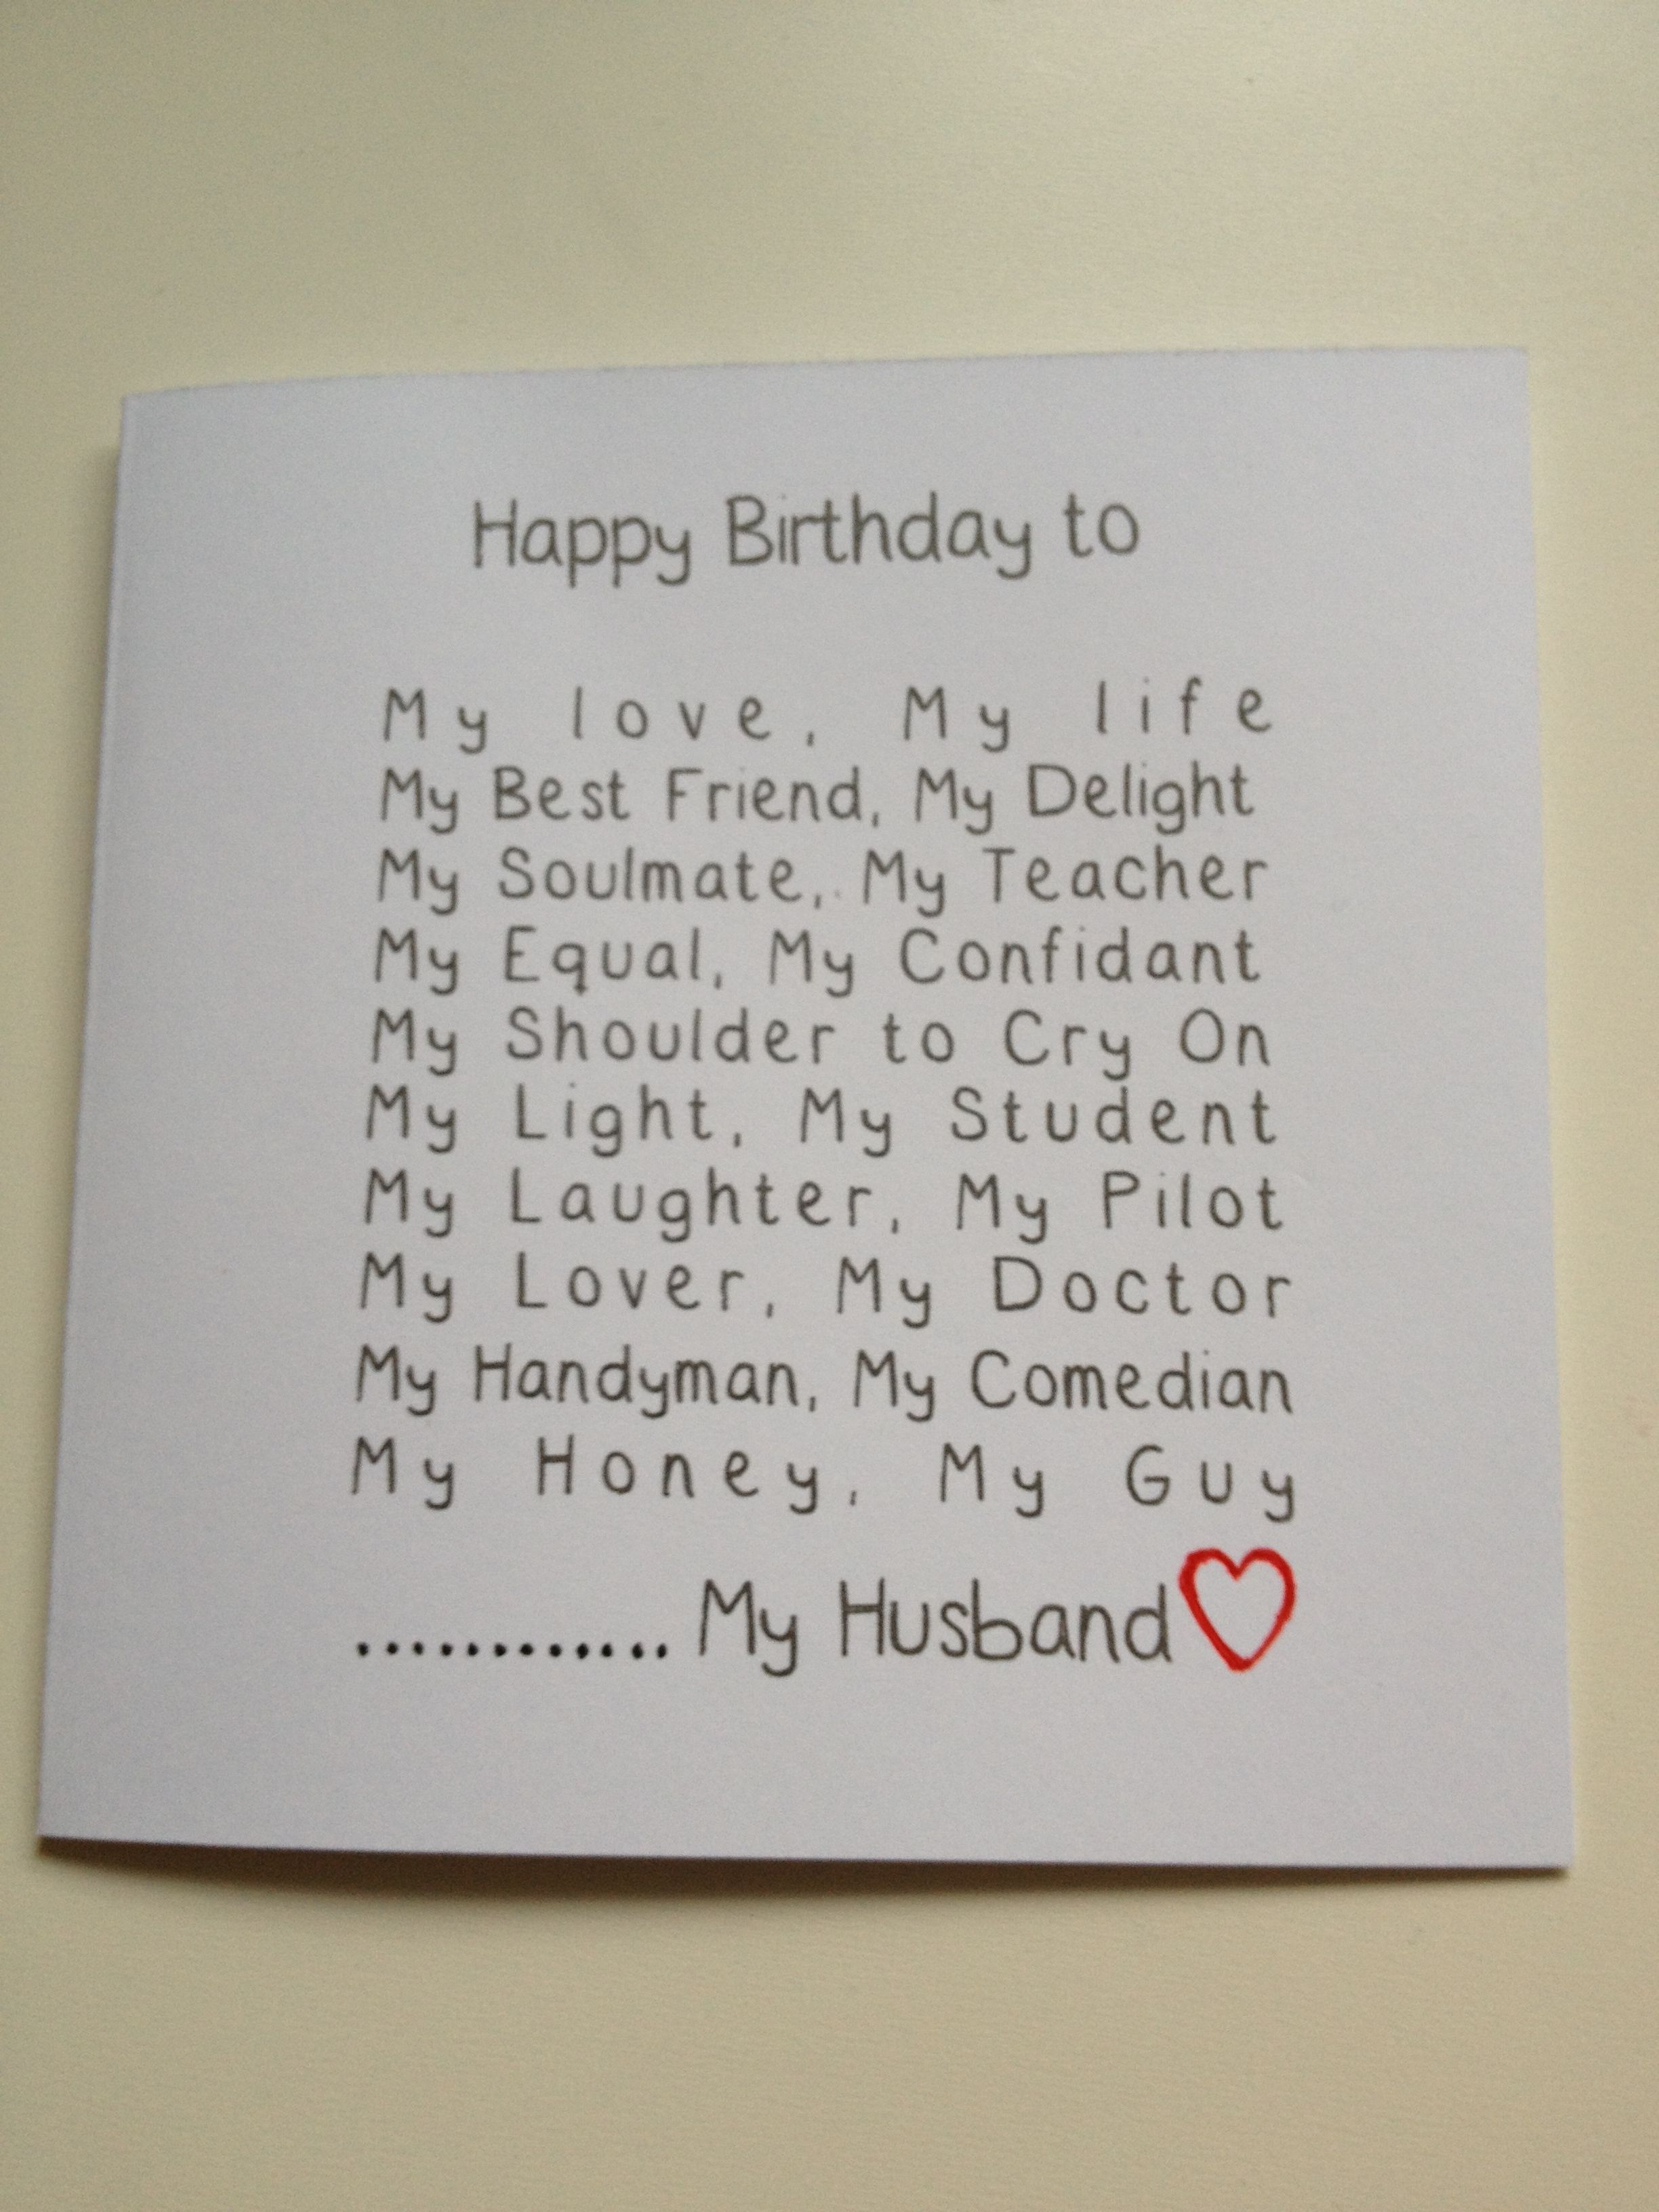 handmade husband birthday card funny adam my love handmade husband birthday card funny